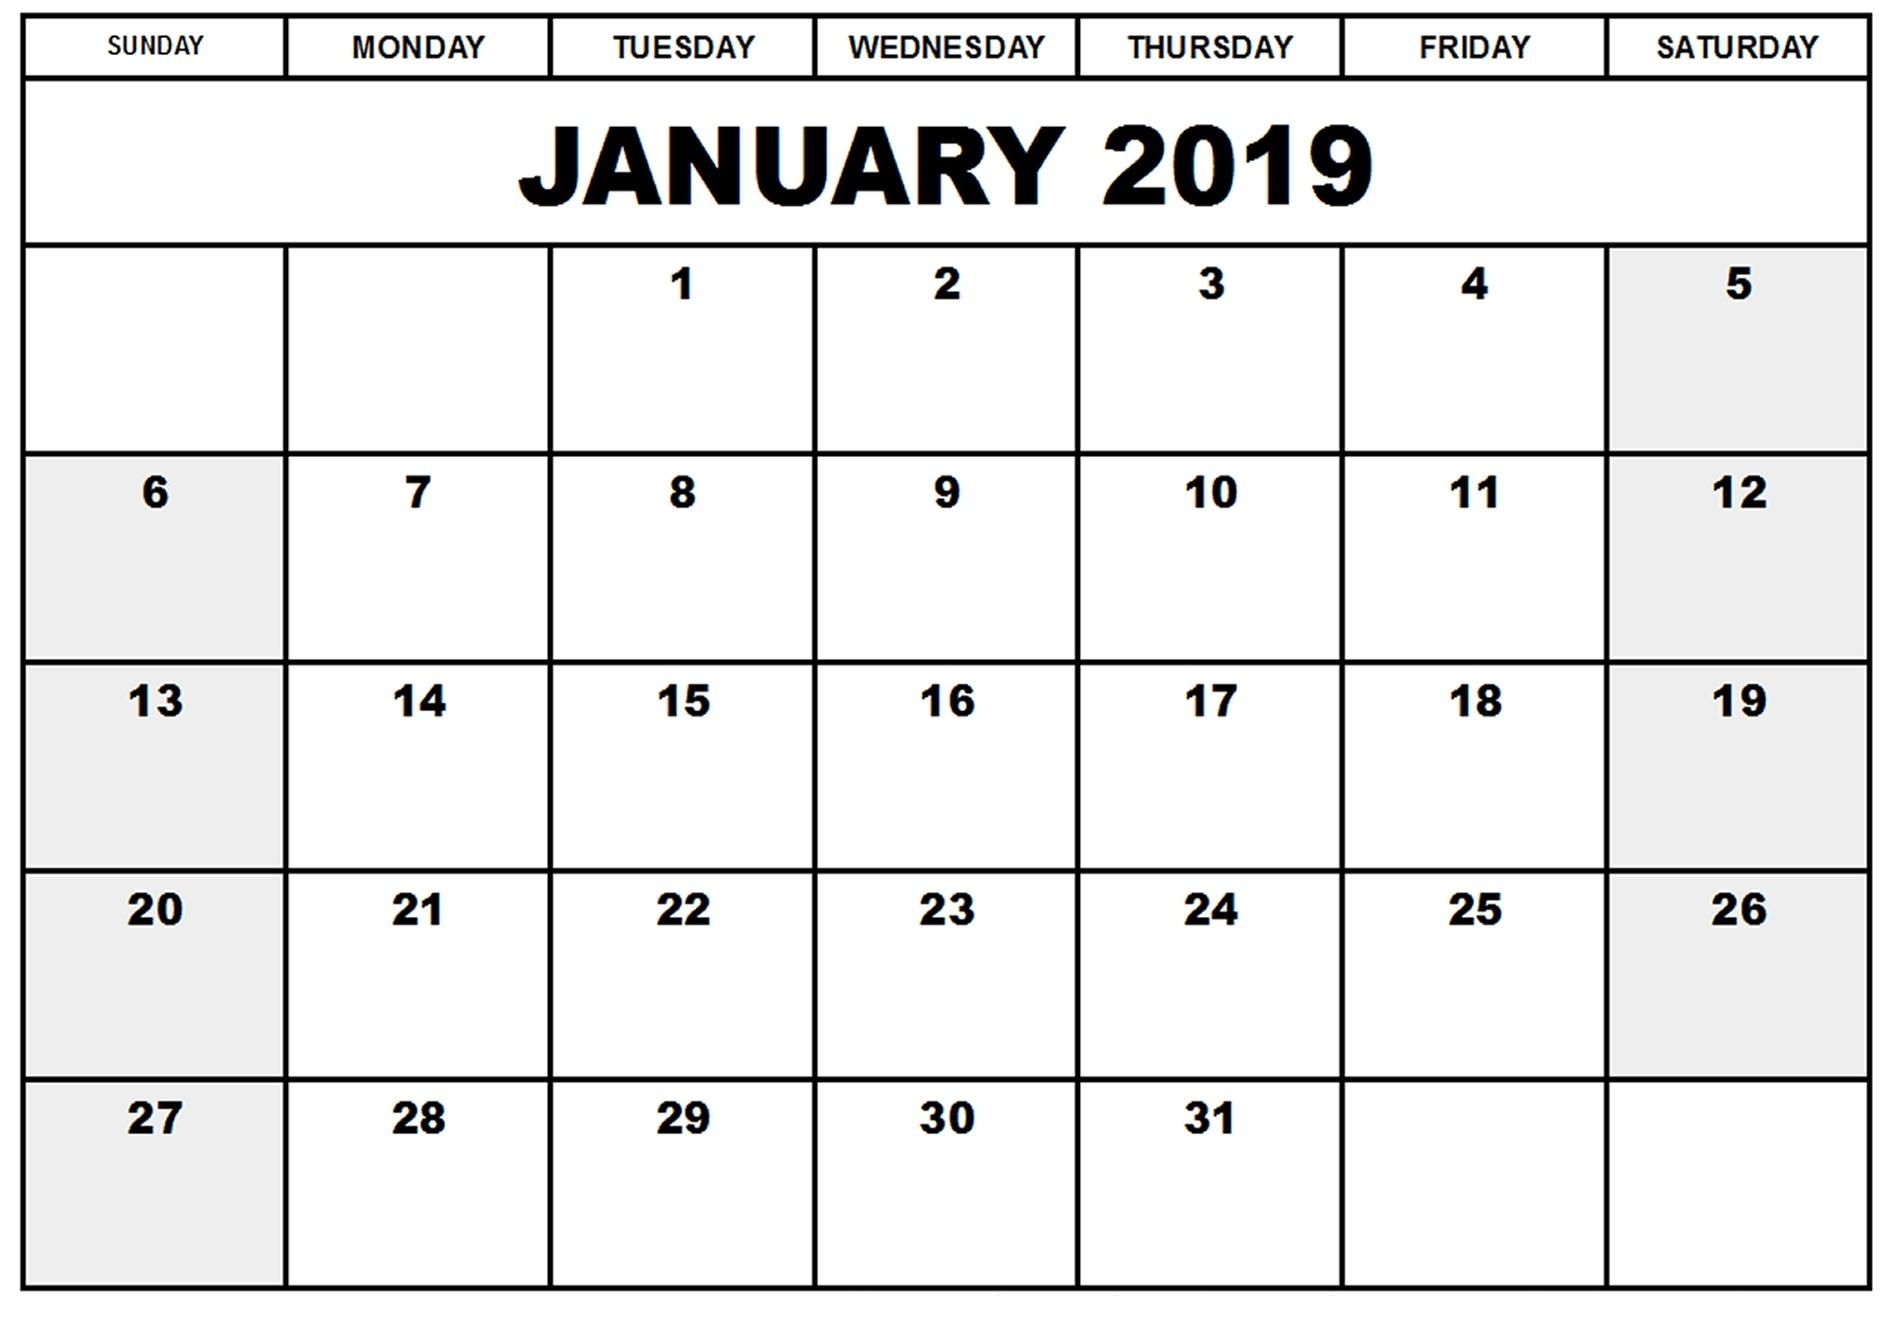 january 2019 calendar printable pdf excel word printable::January 2019 Calendar Excel